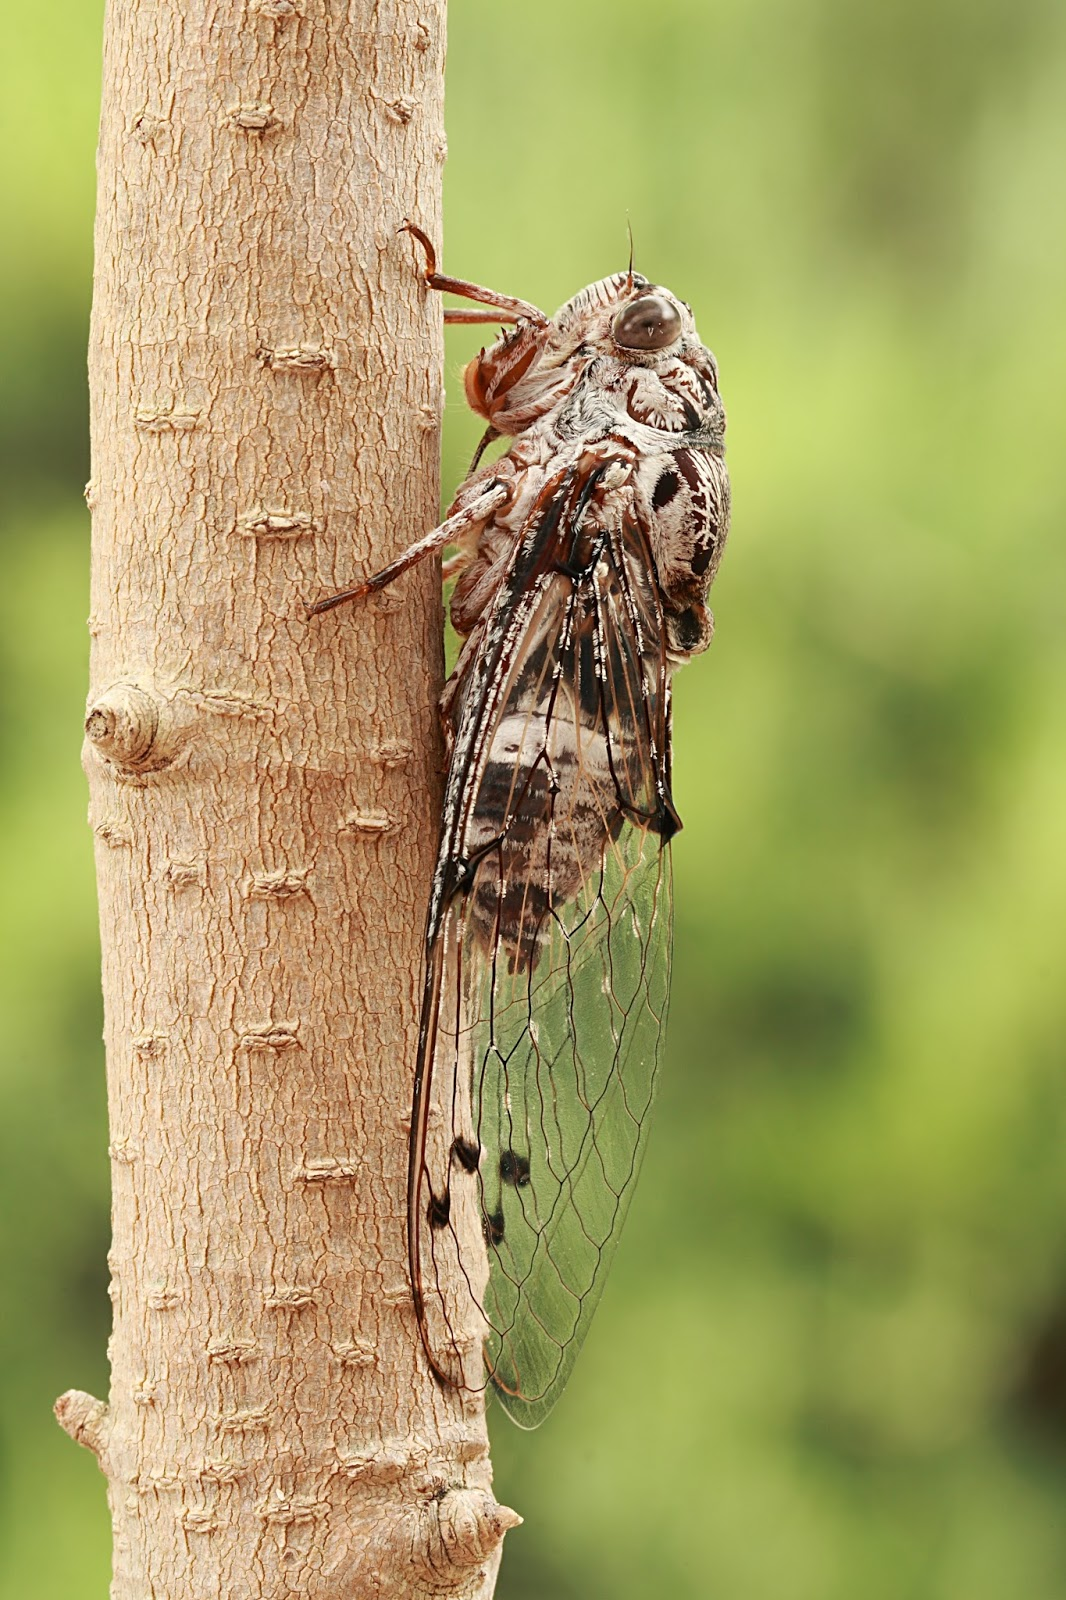 Insects: Floury Baker cicada side